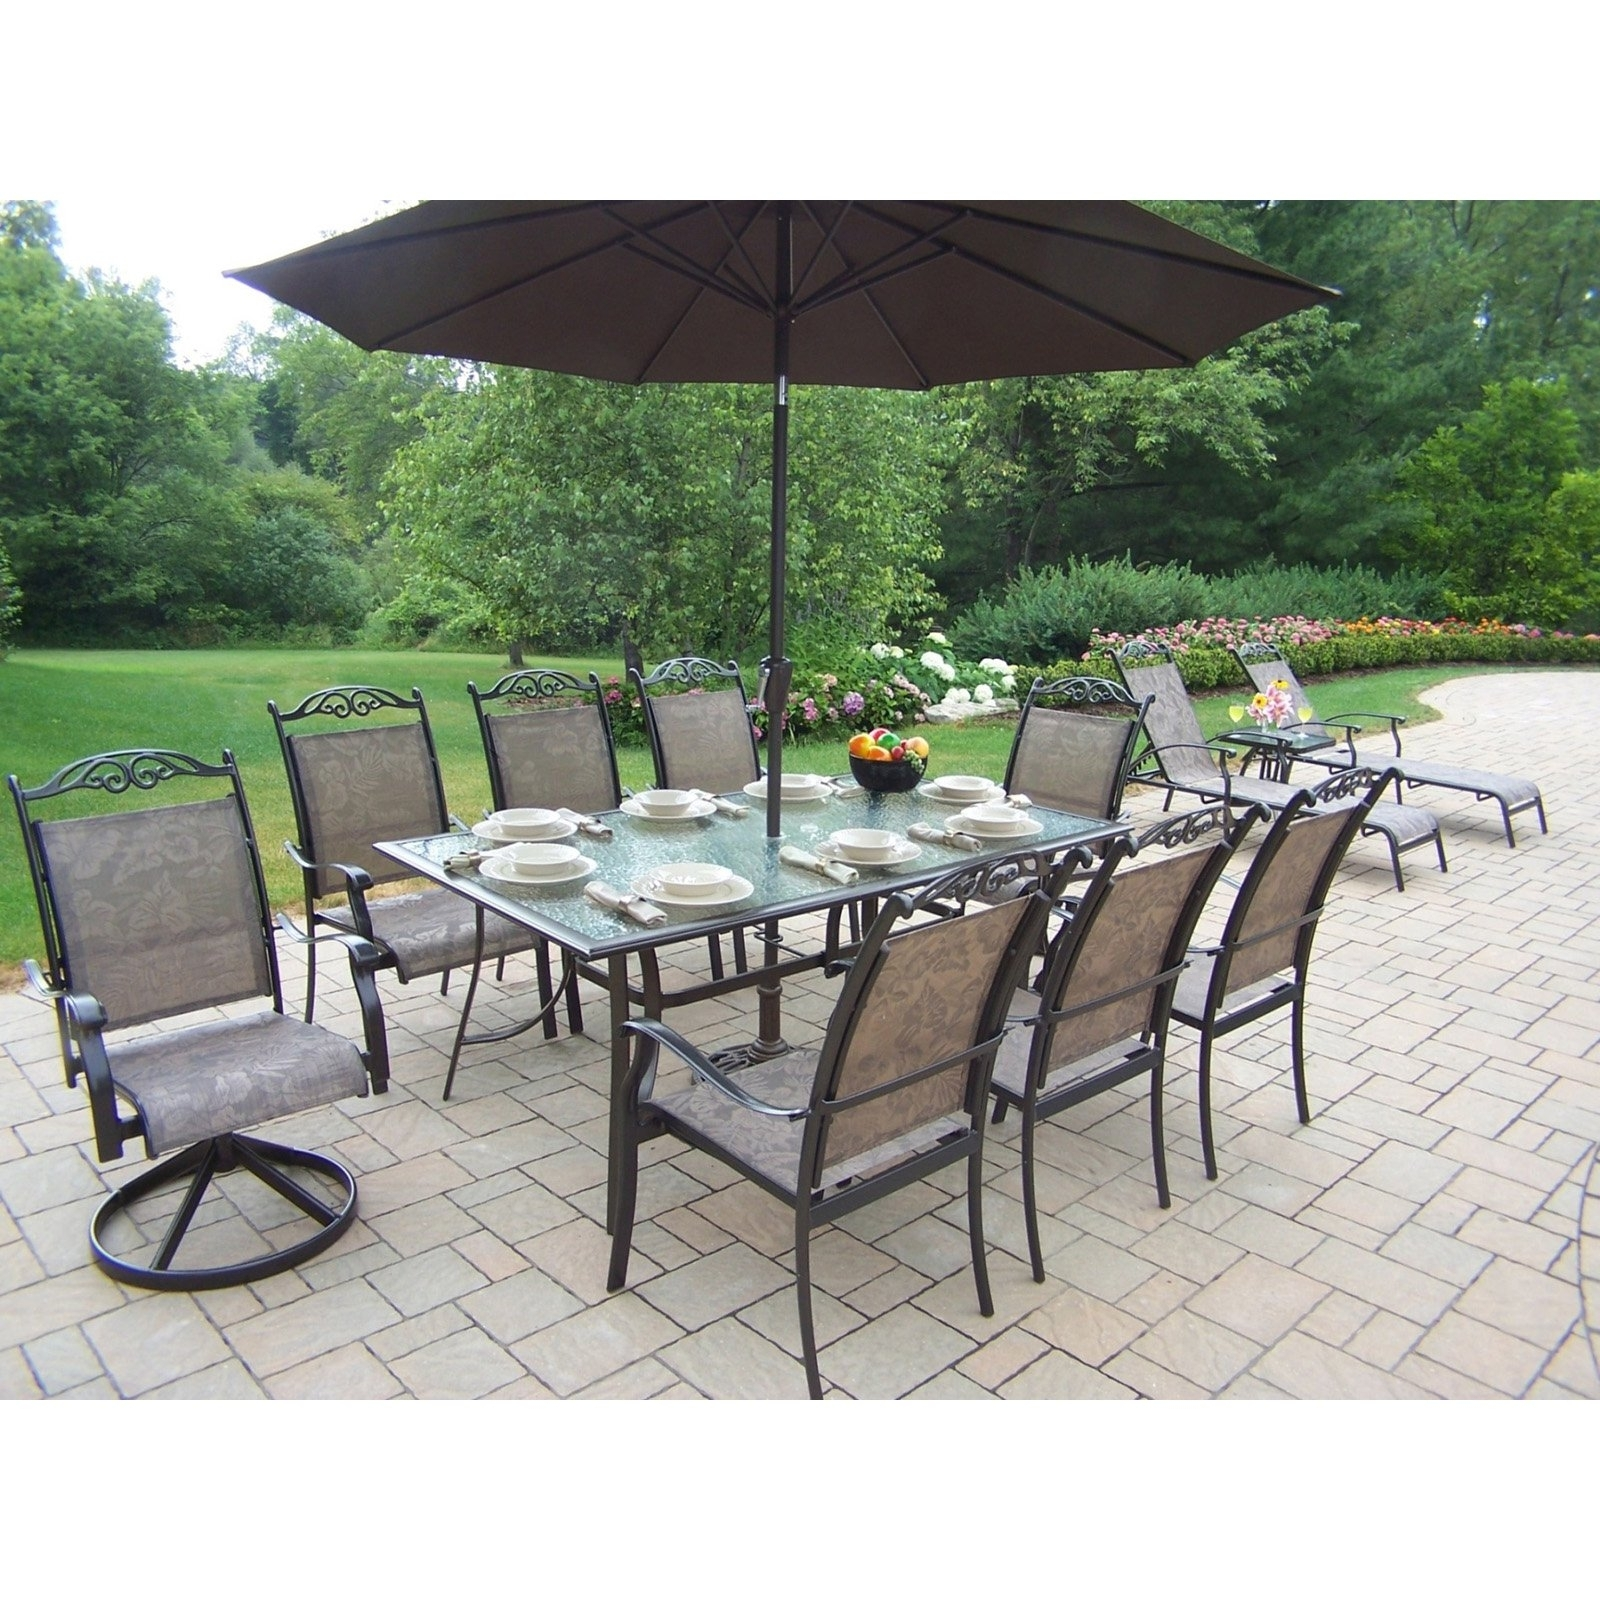 Patio Furniture Walmart Patio Furniture Sets Patio Dining Luxury Intended For Well Liked Patio Sets With Umbrellas (Gallery 1 of 20)